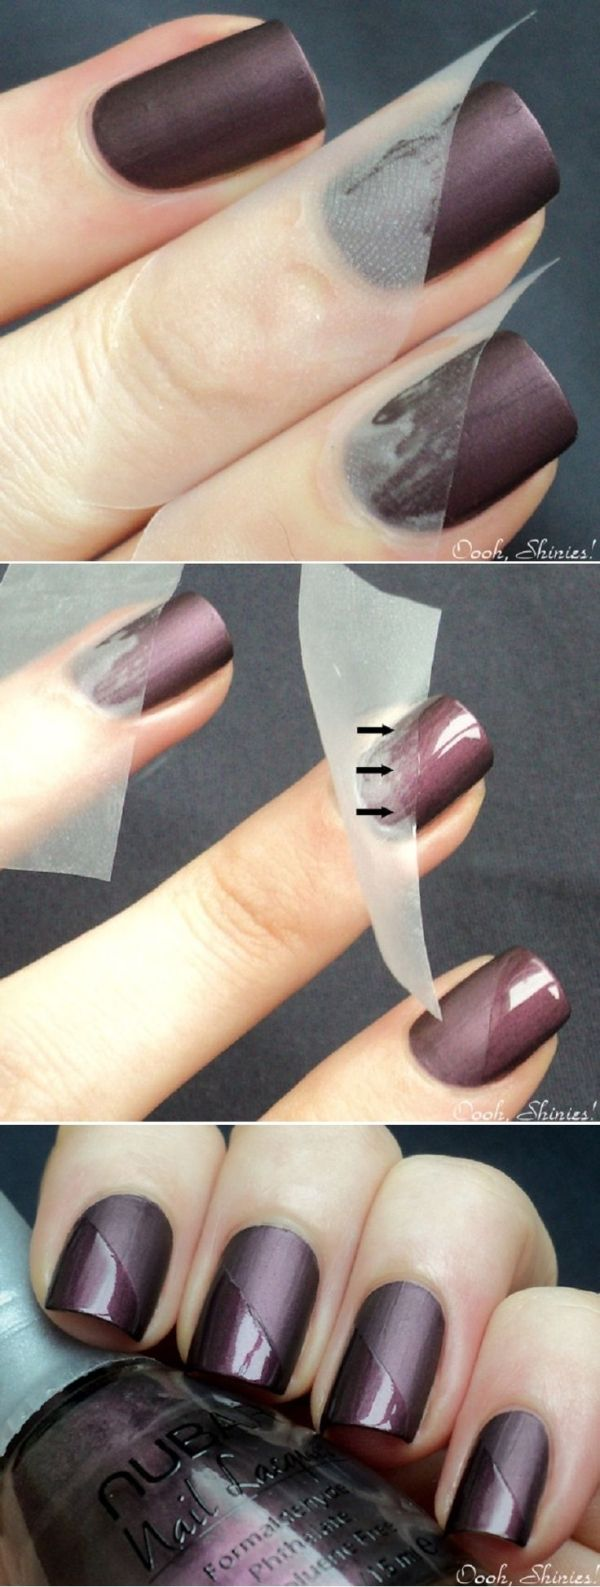 12 Chic Nail Art Designs for Fall 2014 - GleamItUp by brittney